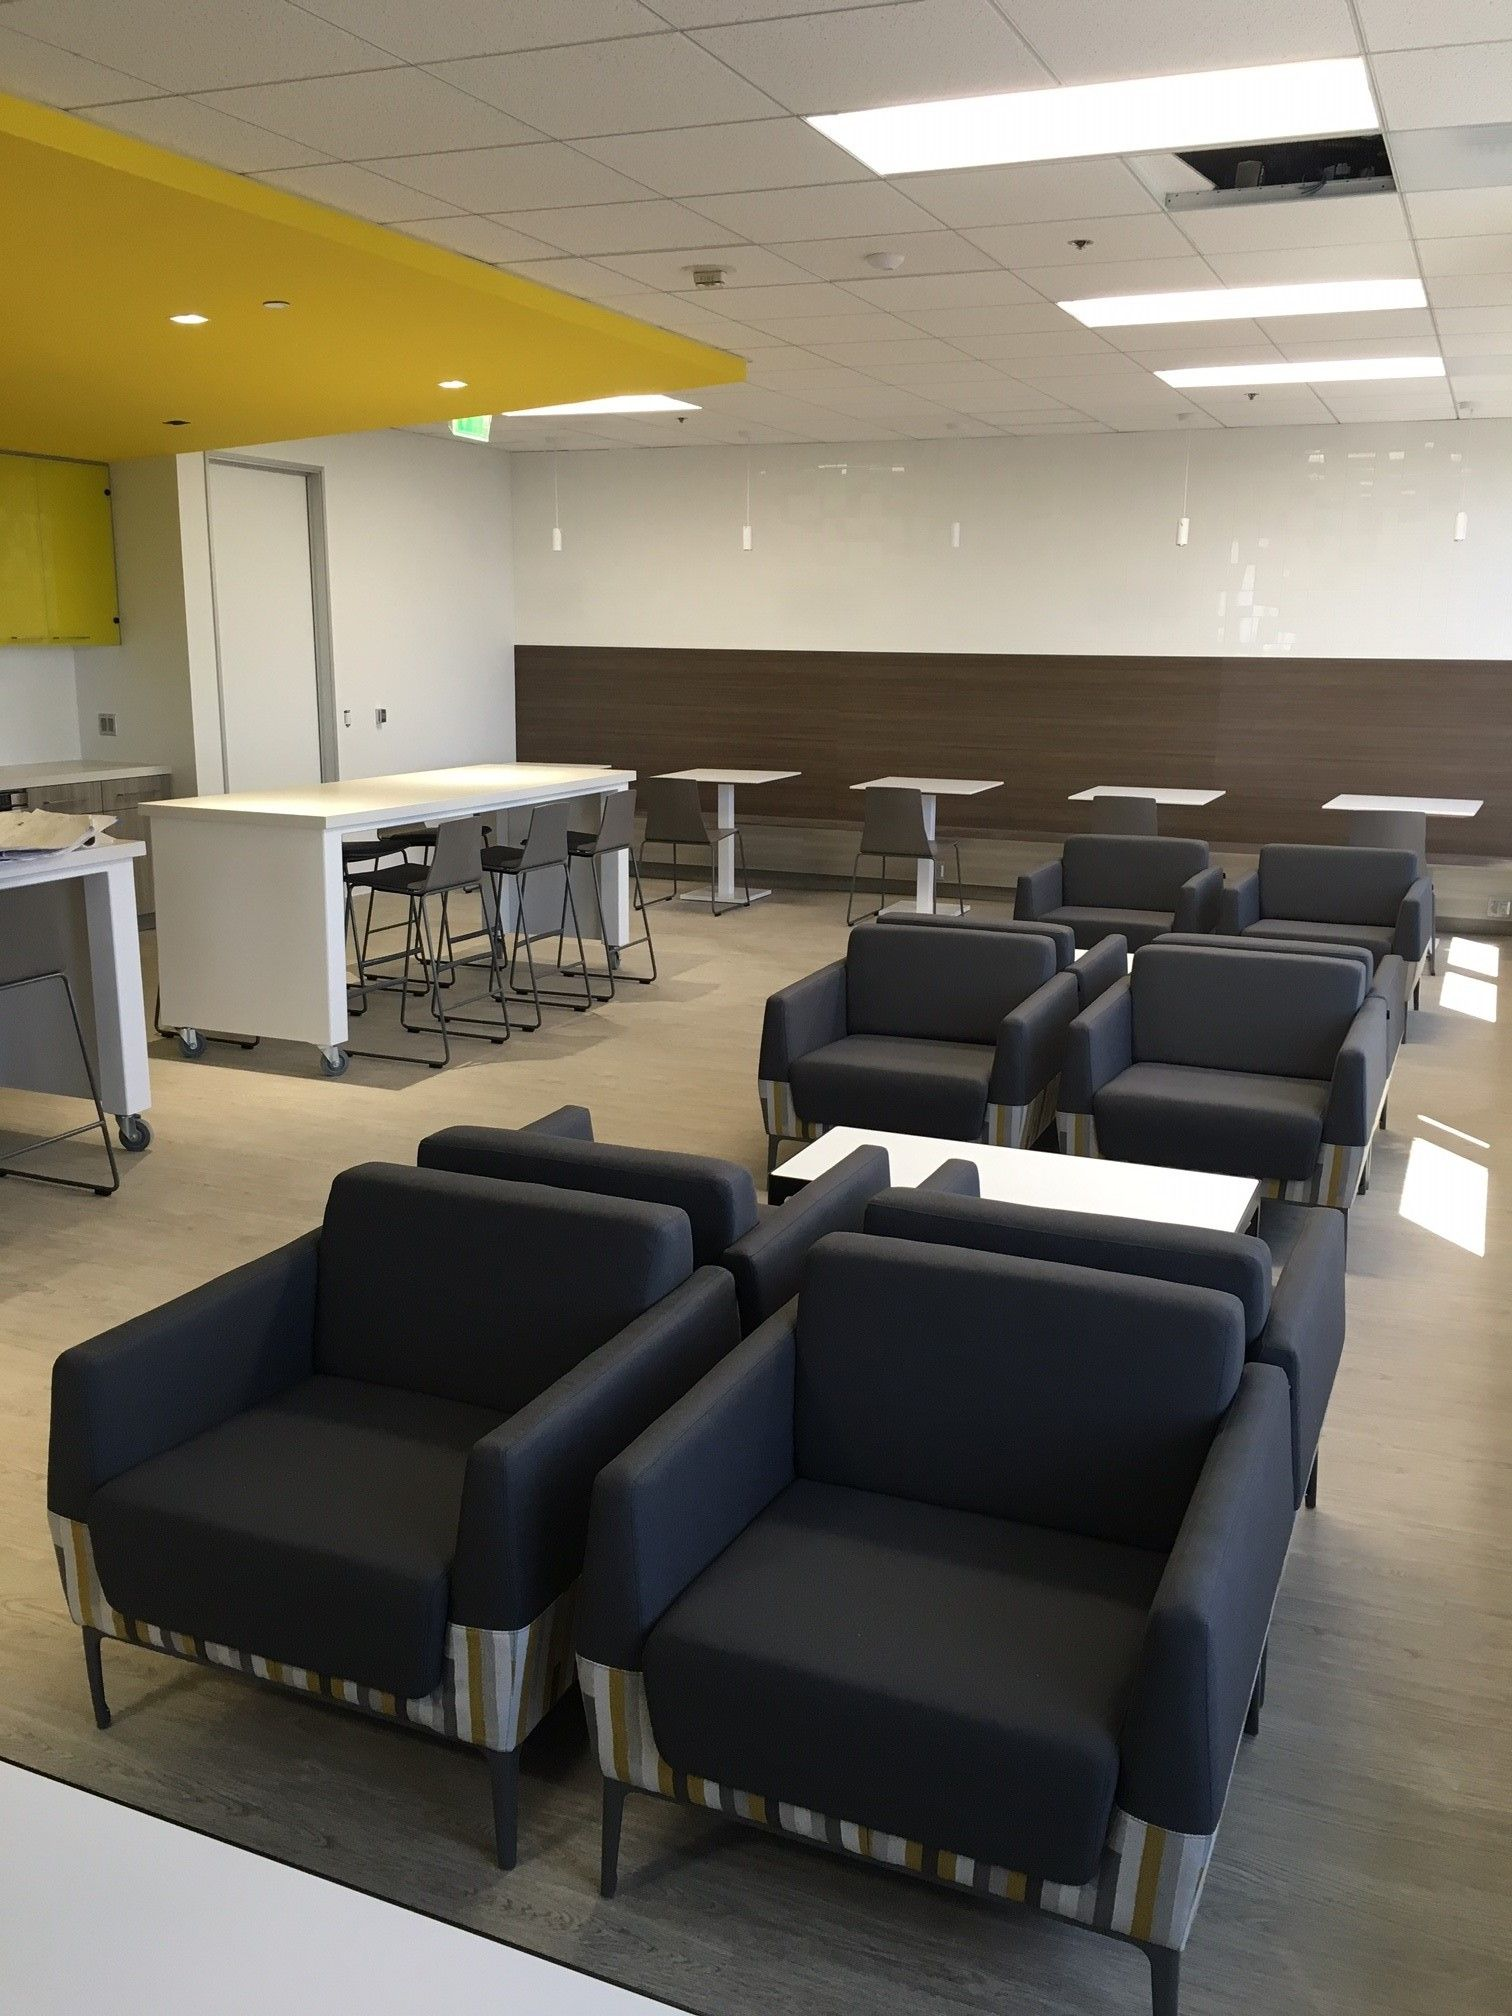 B Free Lounge seating by Steelcase upholstered with Mod